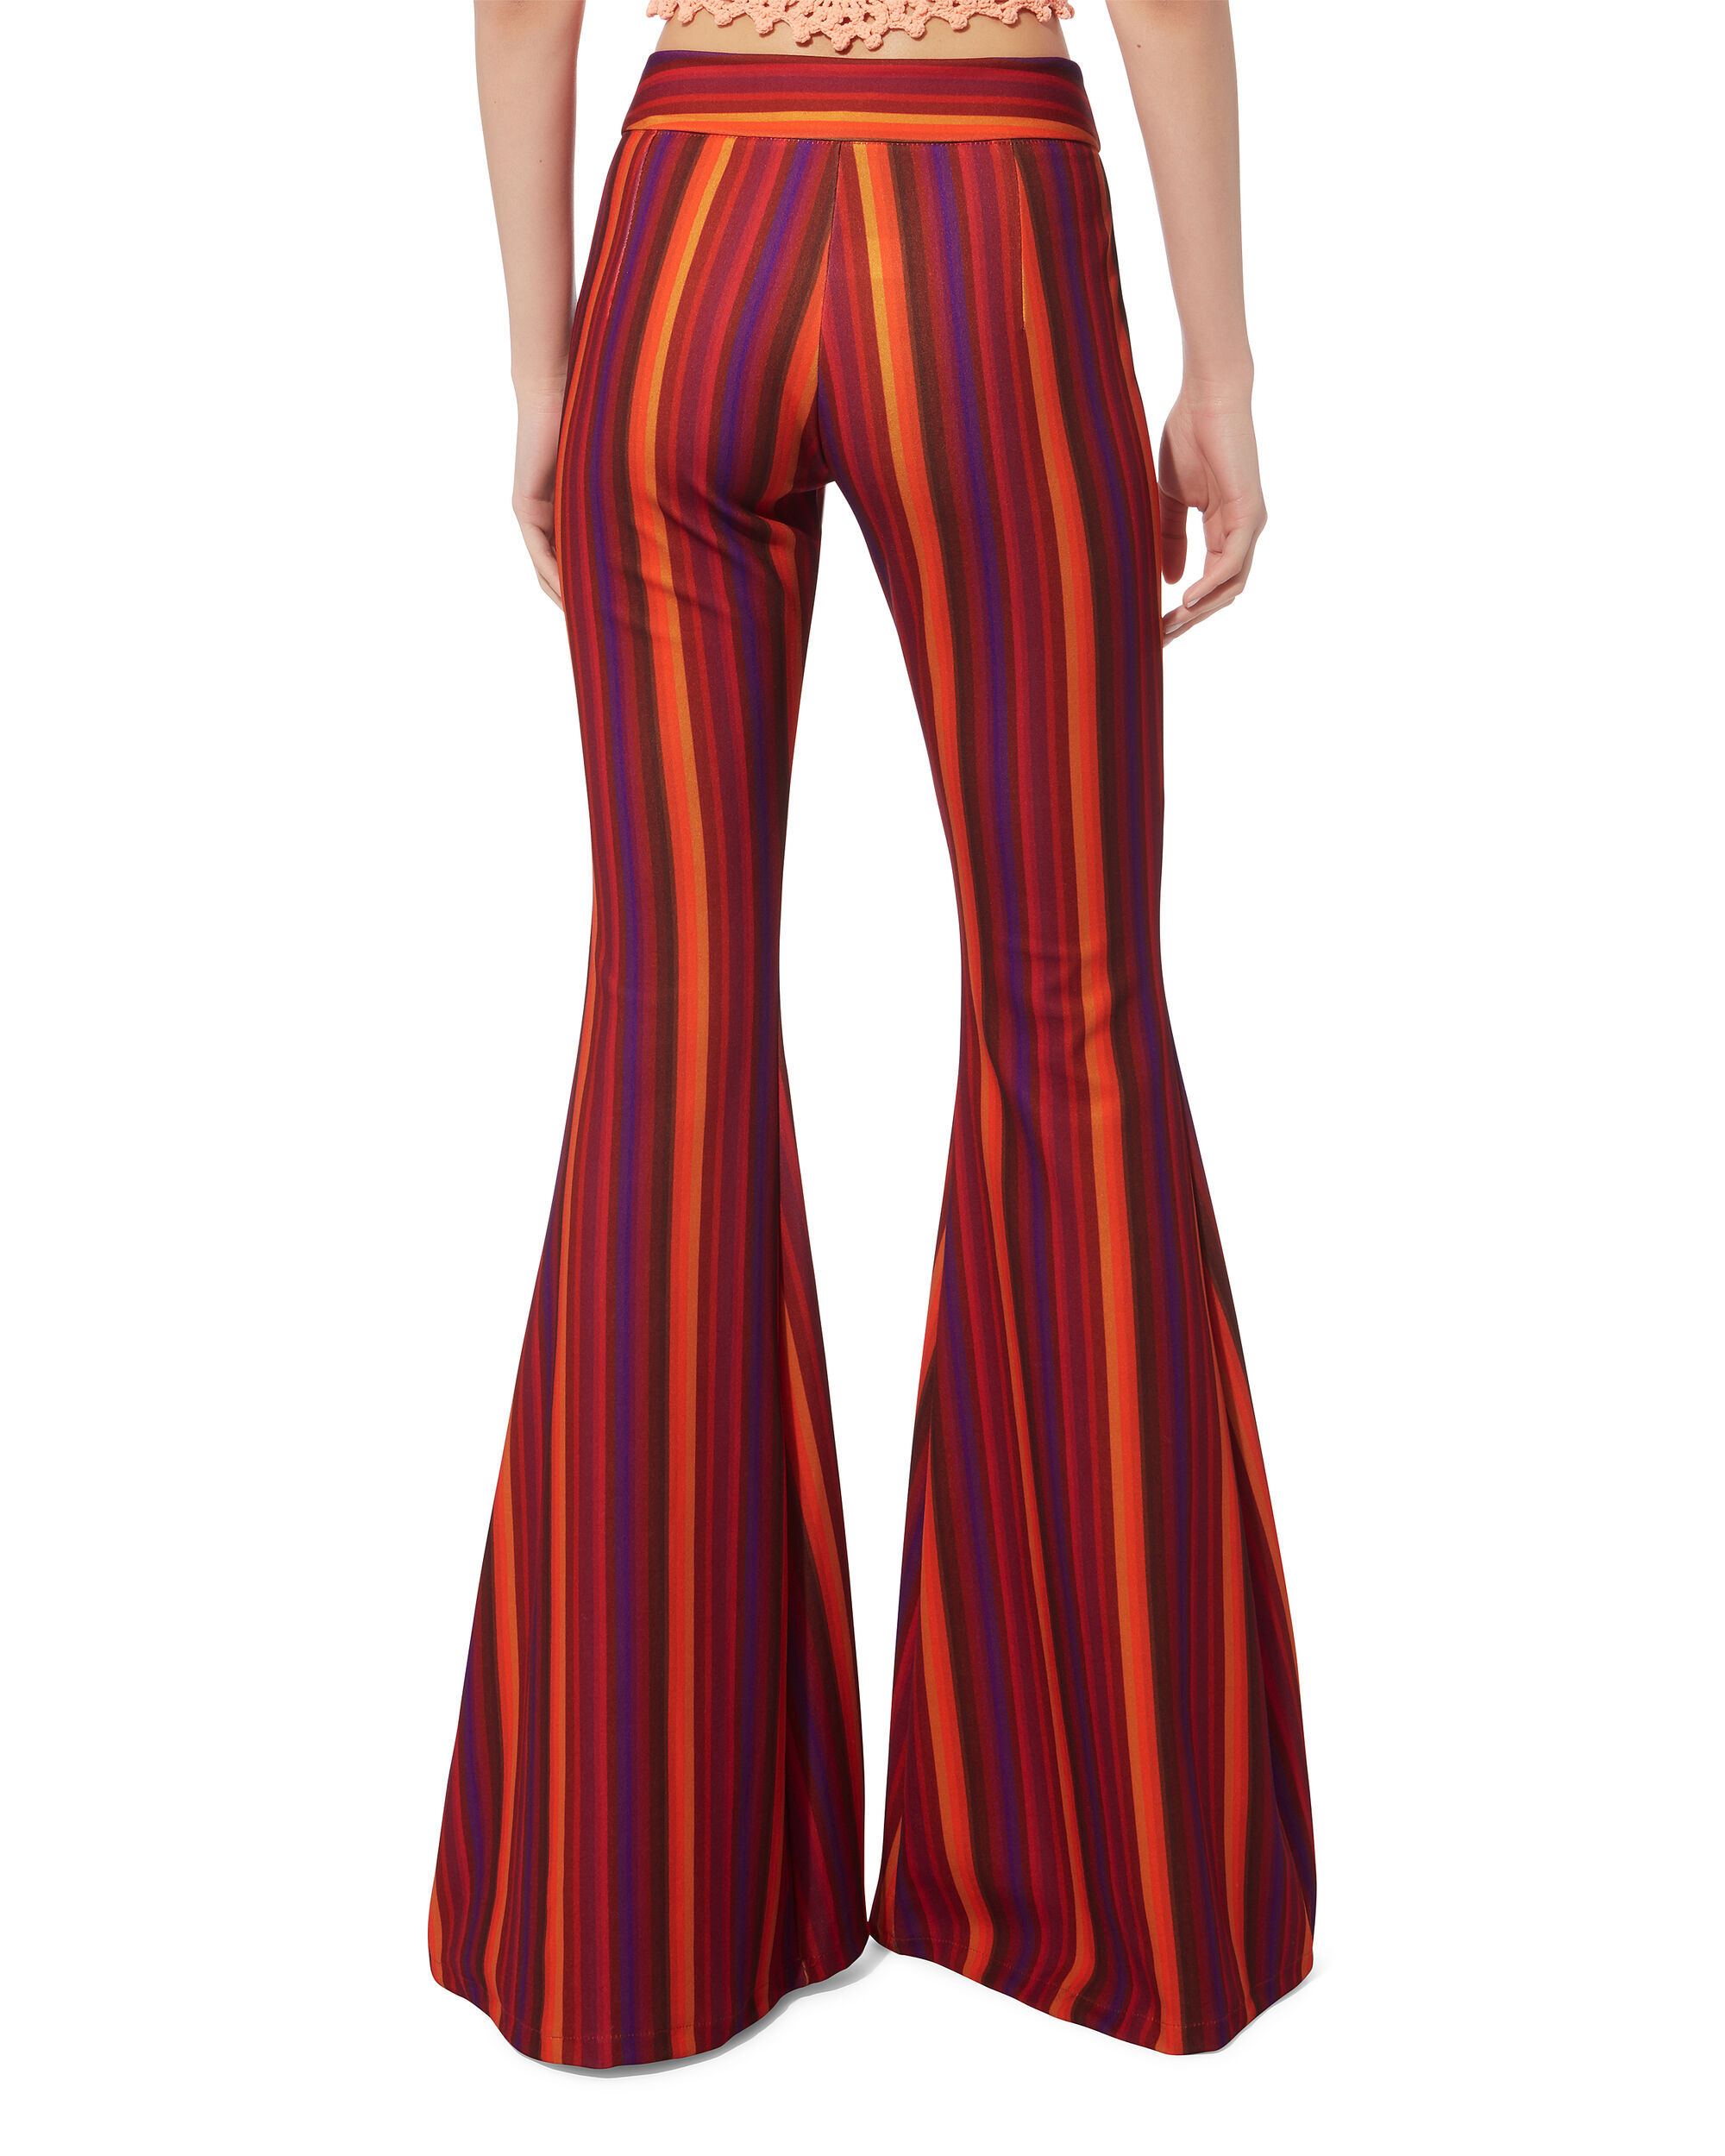 Woodstock Striped Flare Pants, MULTI, hi-res